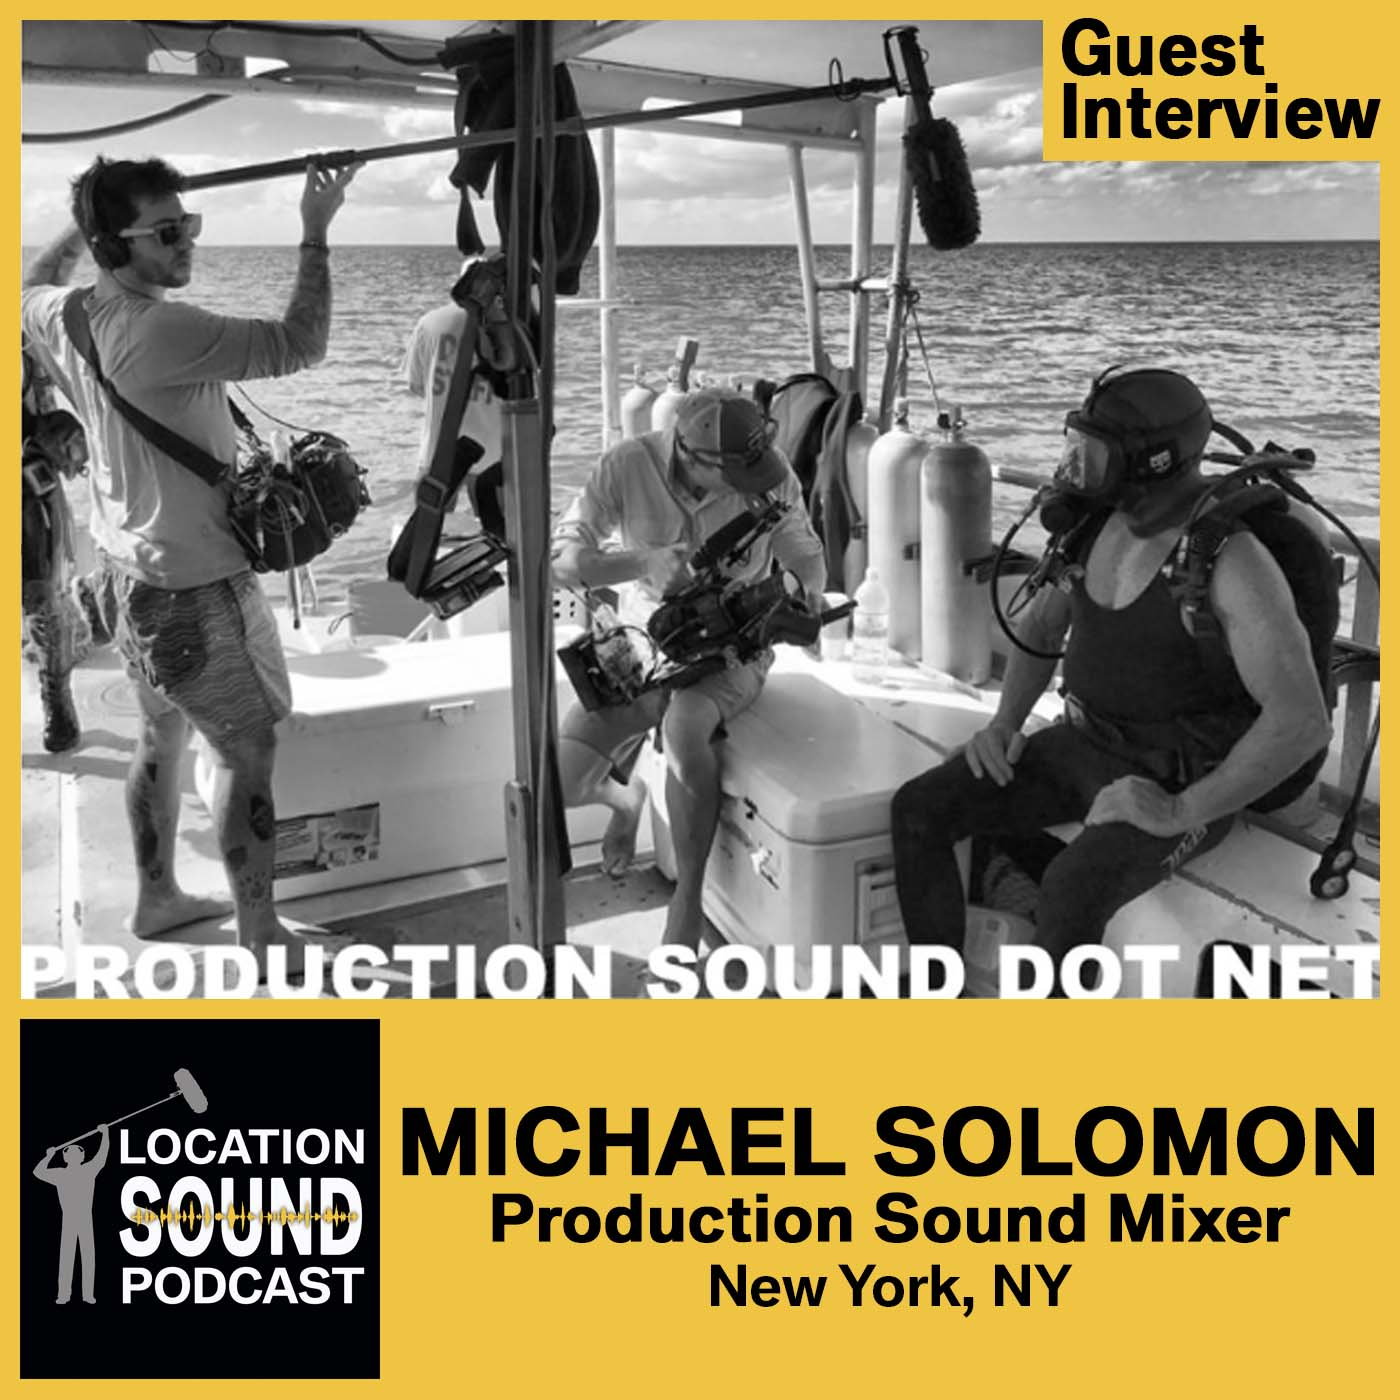 064 Michael Solomon - Production Sound Mixer based out of New York City